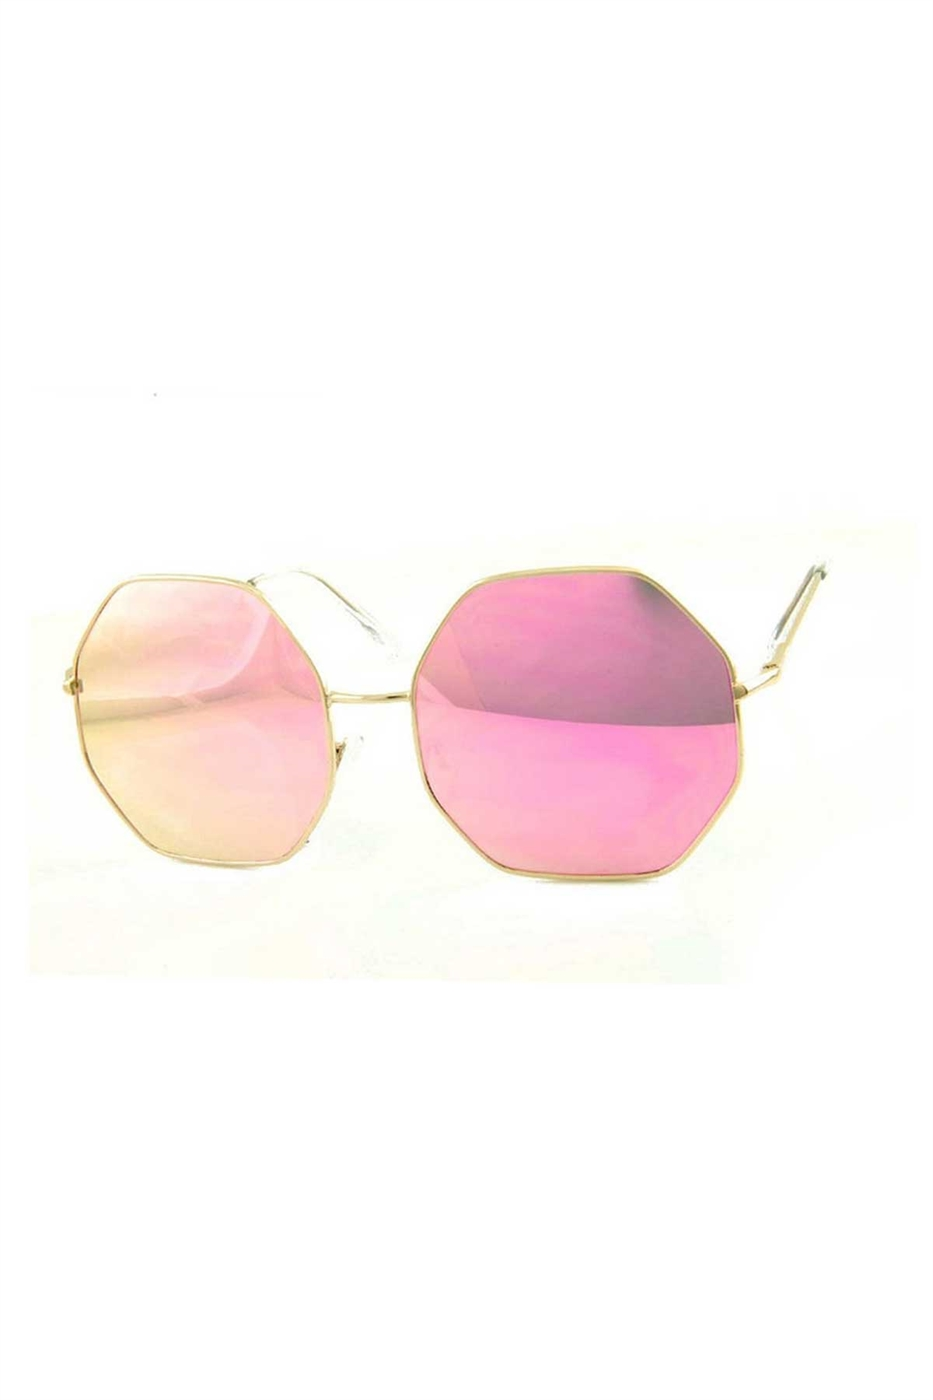 OCTAGONAL SHAPED SUNGLASSES - orangeshine.com